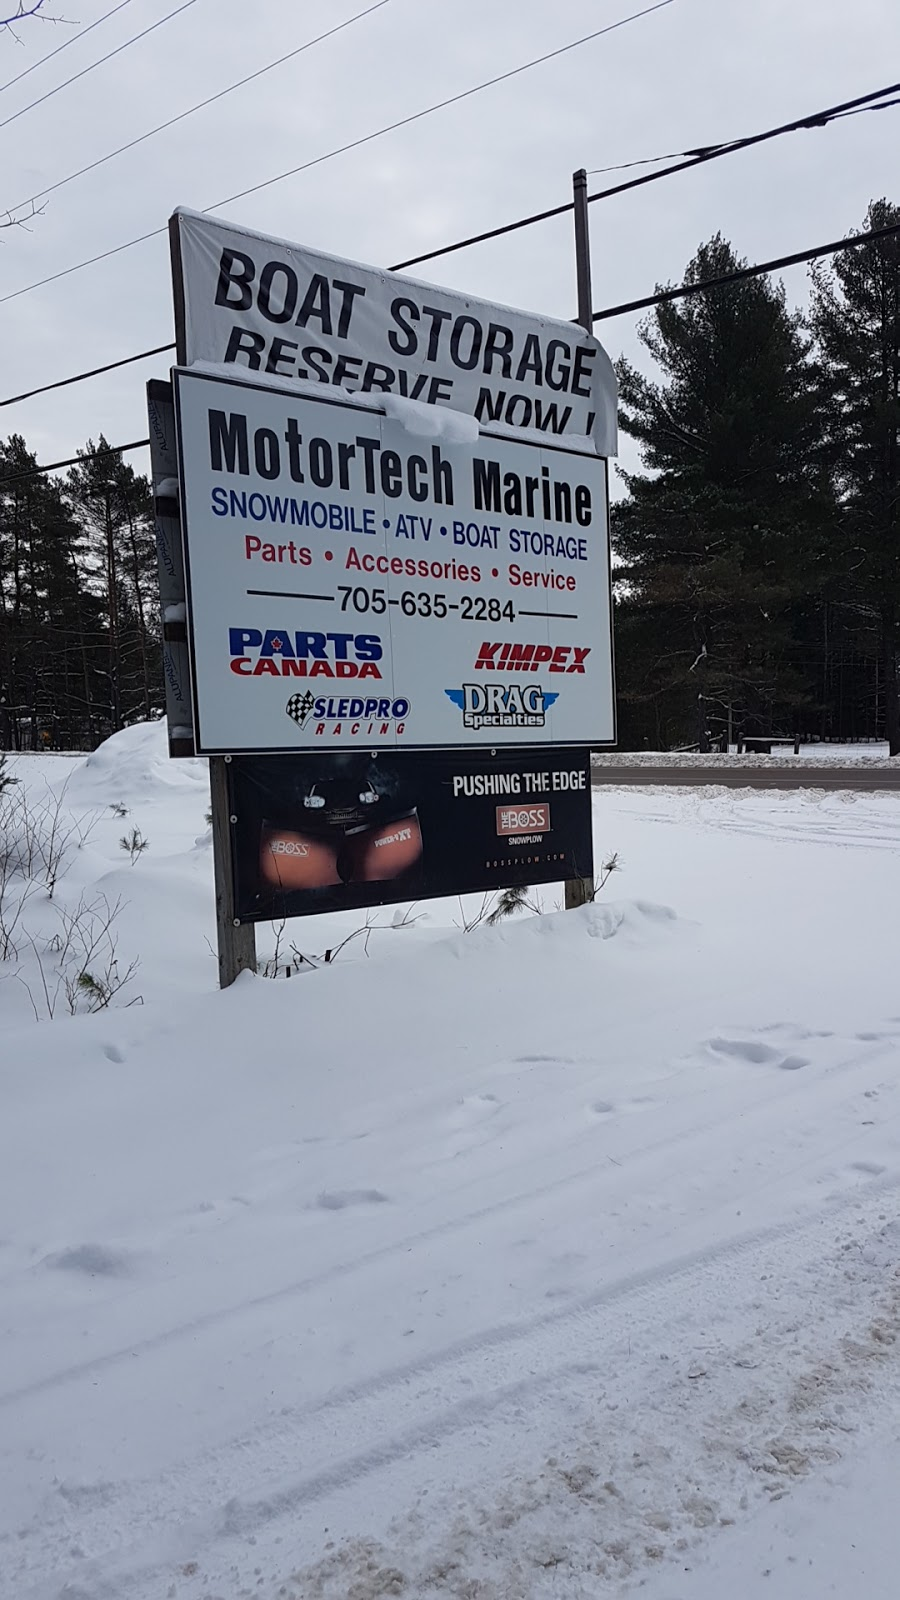 Motortech Marine | store | 2871 ON-60, Dwight, ON P0A 1H0, Canada | 7056352284 OR +1 705-635-2284